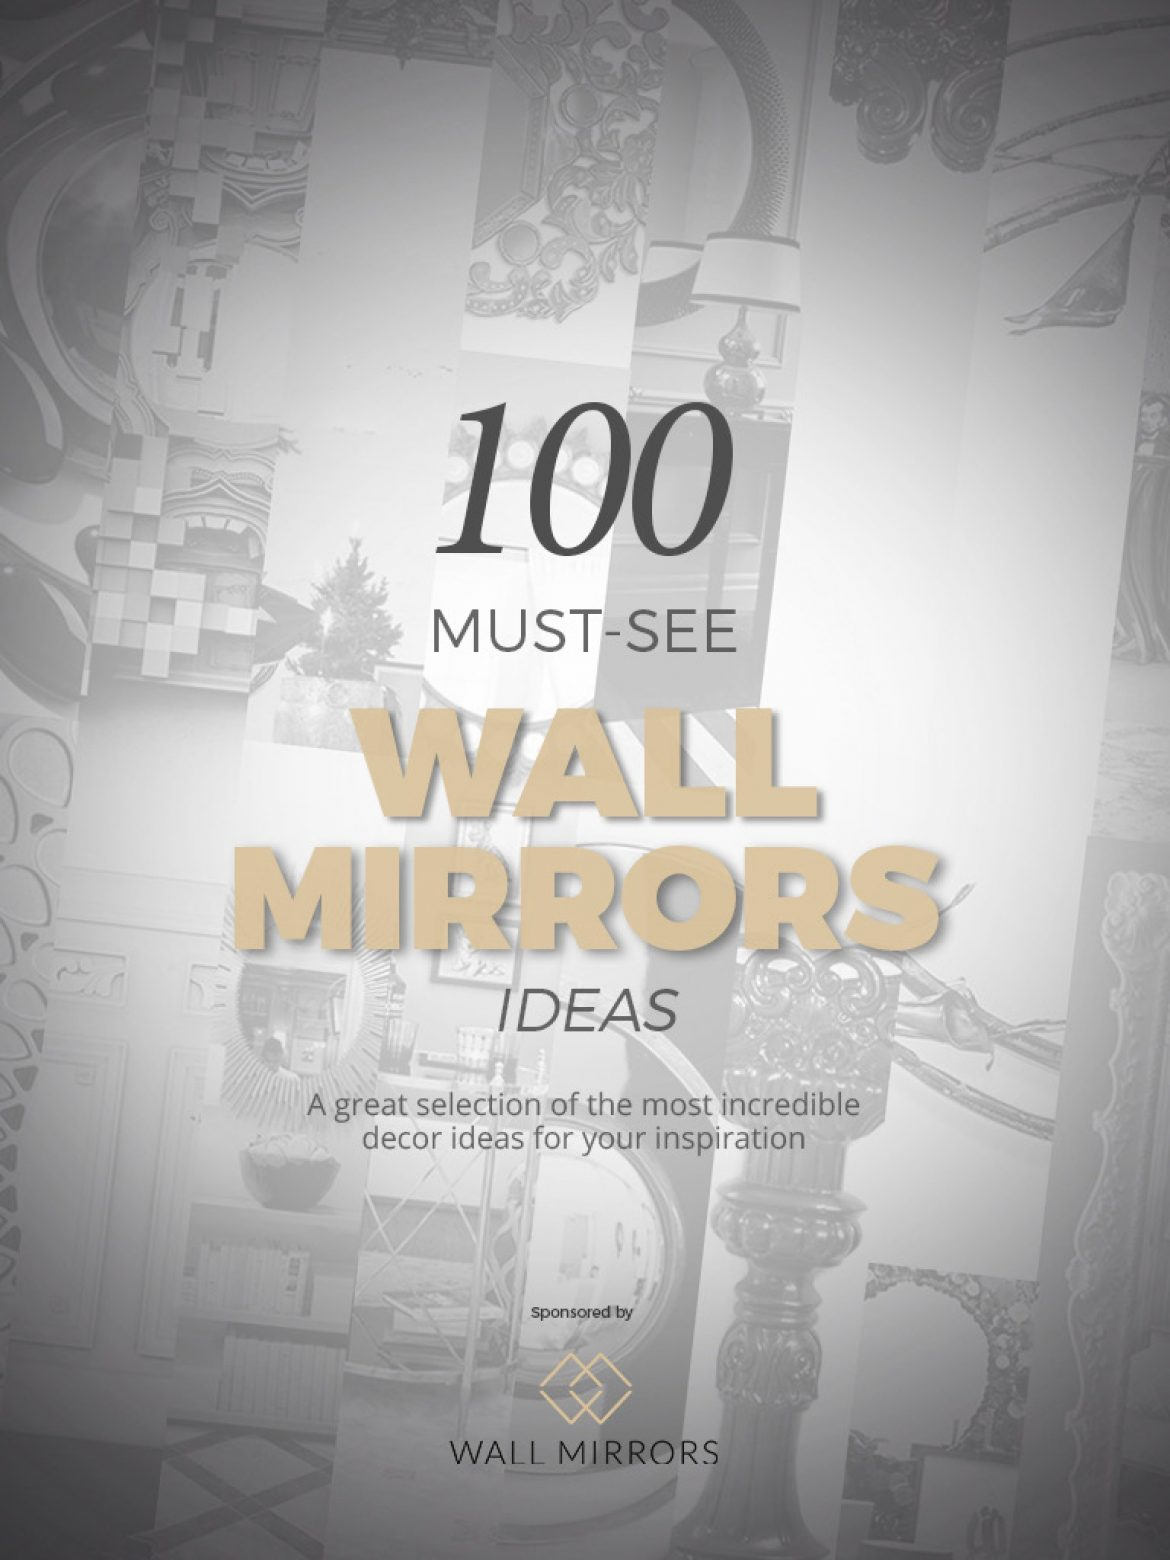 Discover The Unique 100 Must-see Wall Mirrors Ebook ➤To see more Luxury Bathroom ideas visit us at www.luxurybathrooms.eu #bathroom #homedecorideas #bathroomideas @BathroomsLuxury